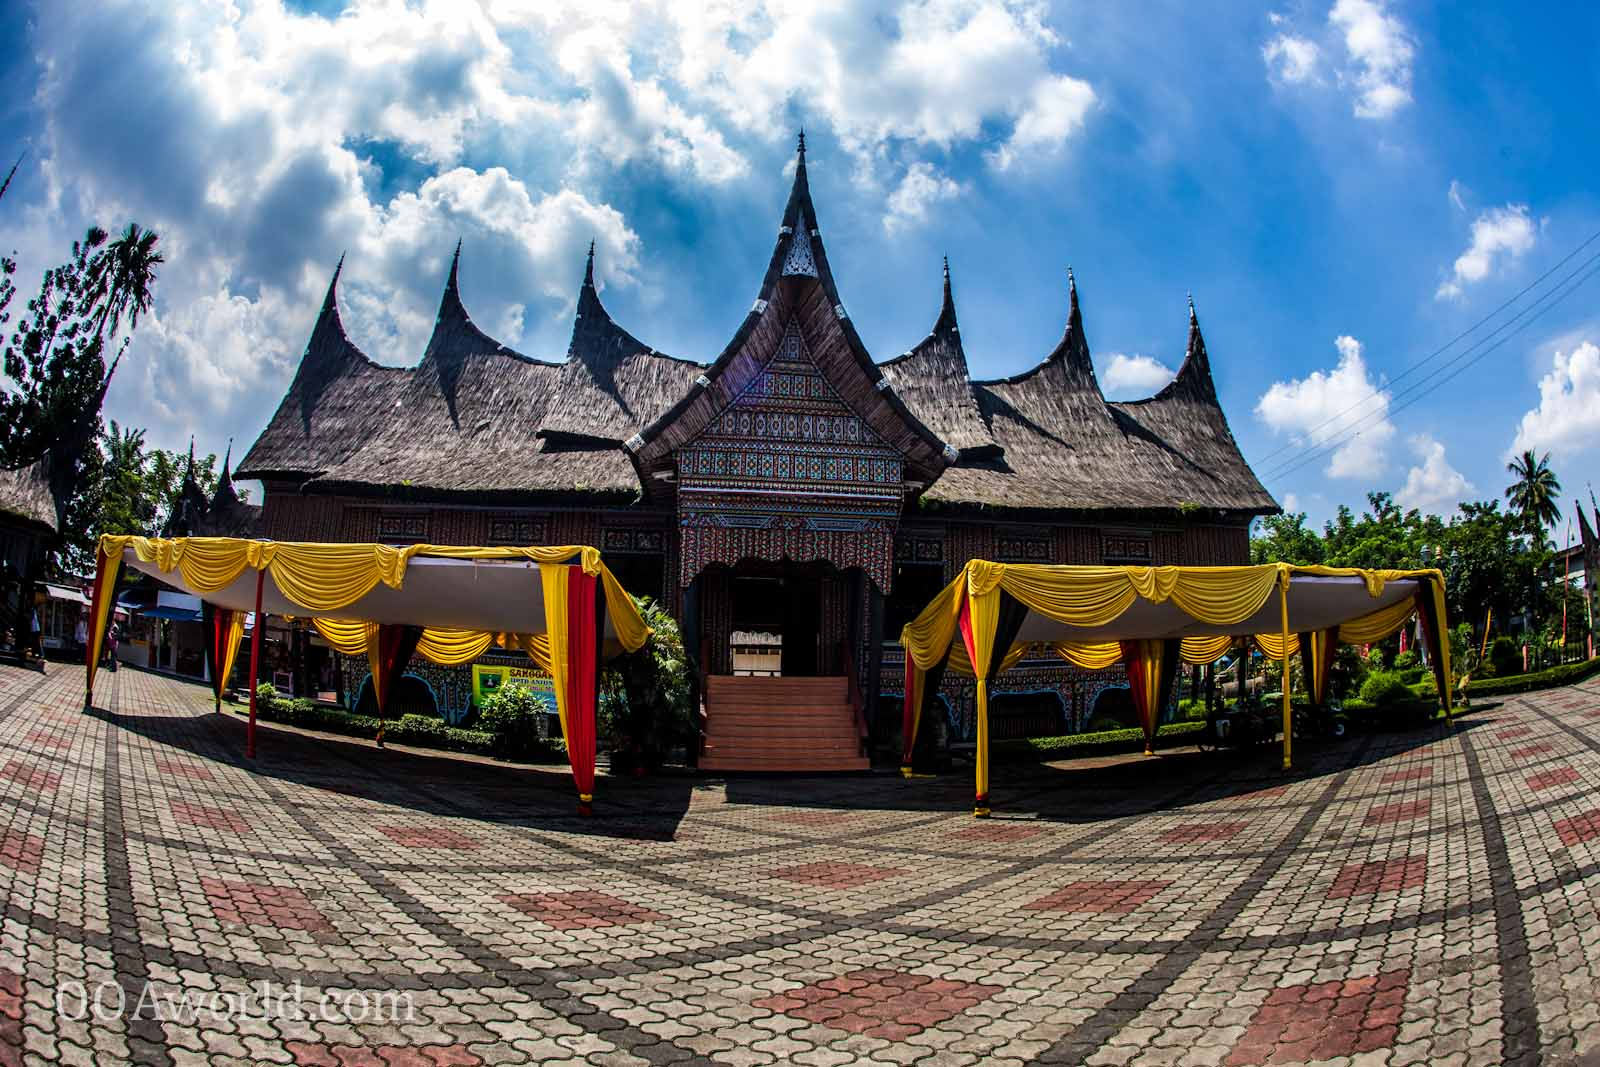 TMII Jakarta Taman Mini Indah Indonesia Photo Ooaworld